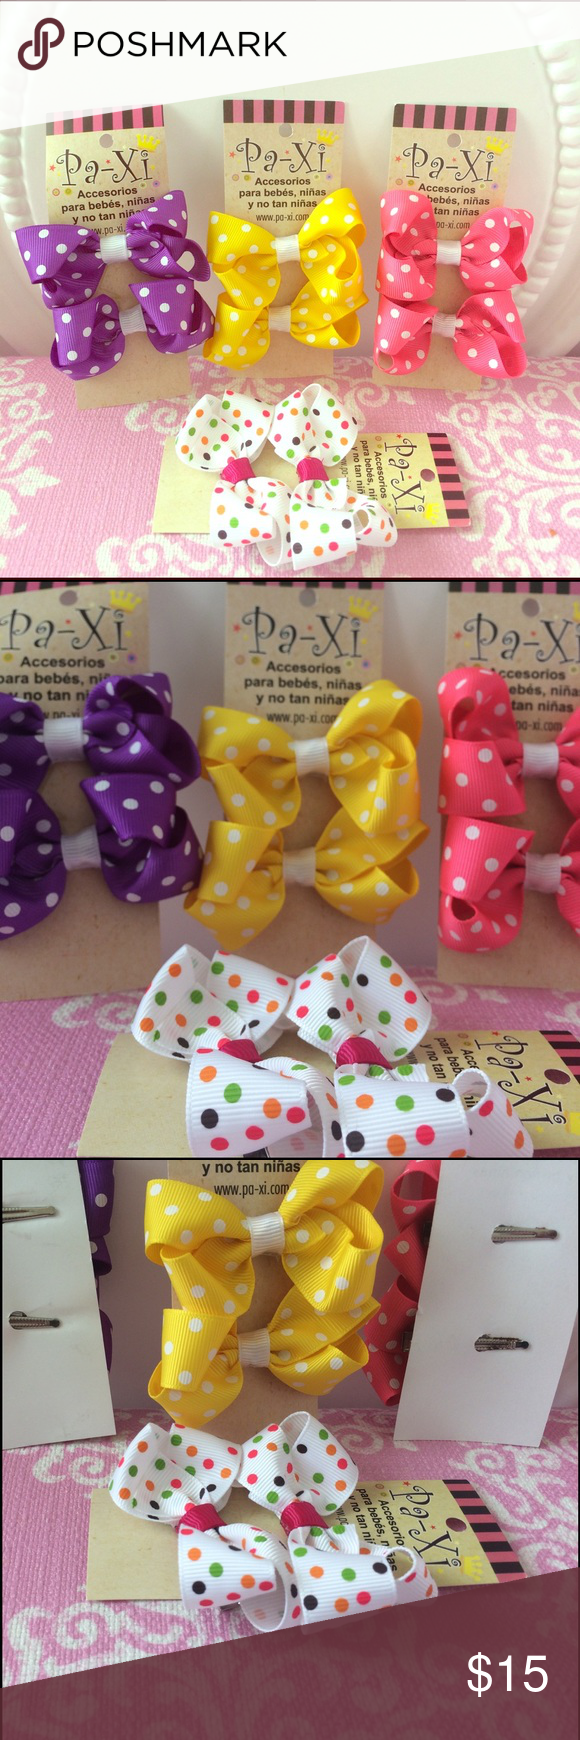 🎀 Bright Fun Bow Clip set 🎀 8 bow clips (4 pairs) in beautiful vibrant colors. Clip is easy to use and holds hair well while keeping the little ones comfortable! Also can be used for adults! If interested in customizing a bundle, please comment and I am happy to work with you 😊. Paxi Accessories Hair Accessories